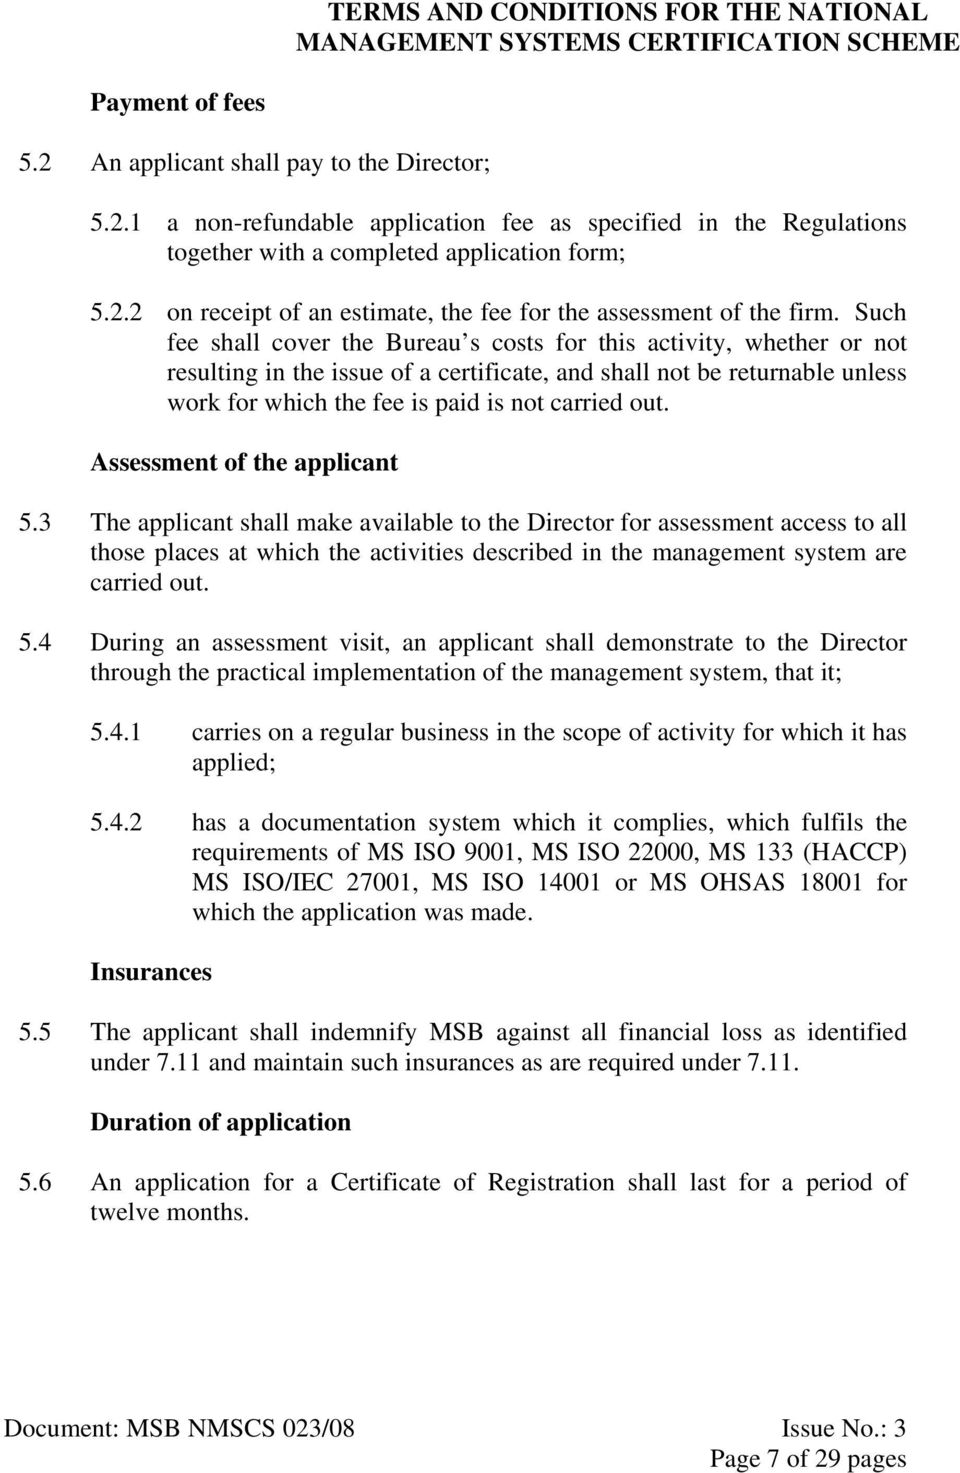 Assessment of the applicant 5.3 The applicant shall make available to the Director for assessment access to all those places at which the activities described in the management system are carried out.